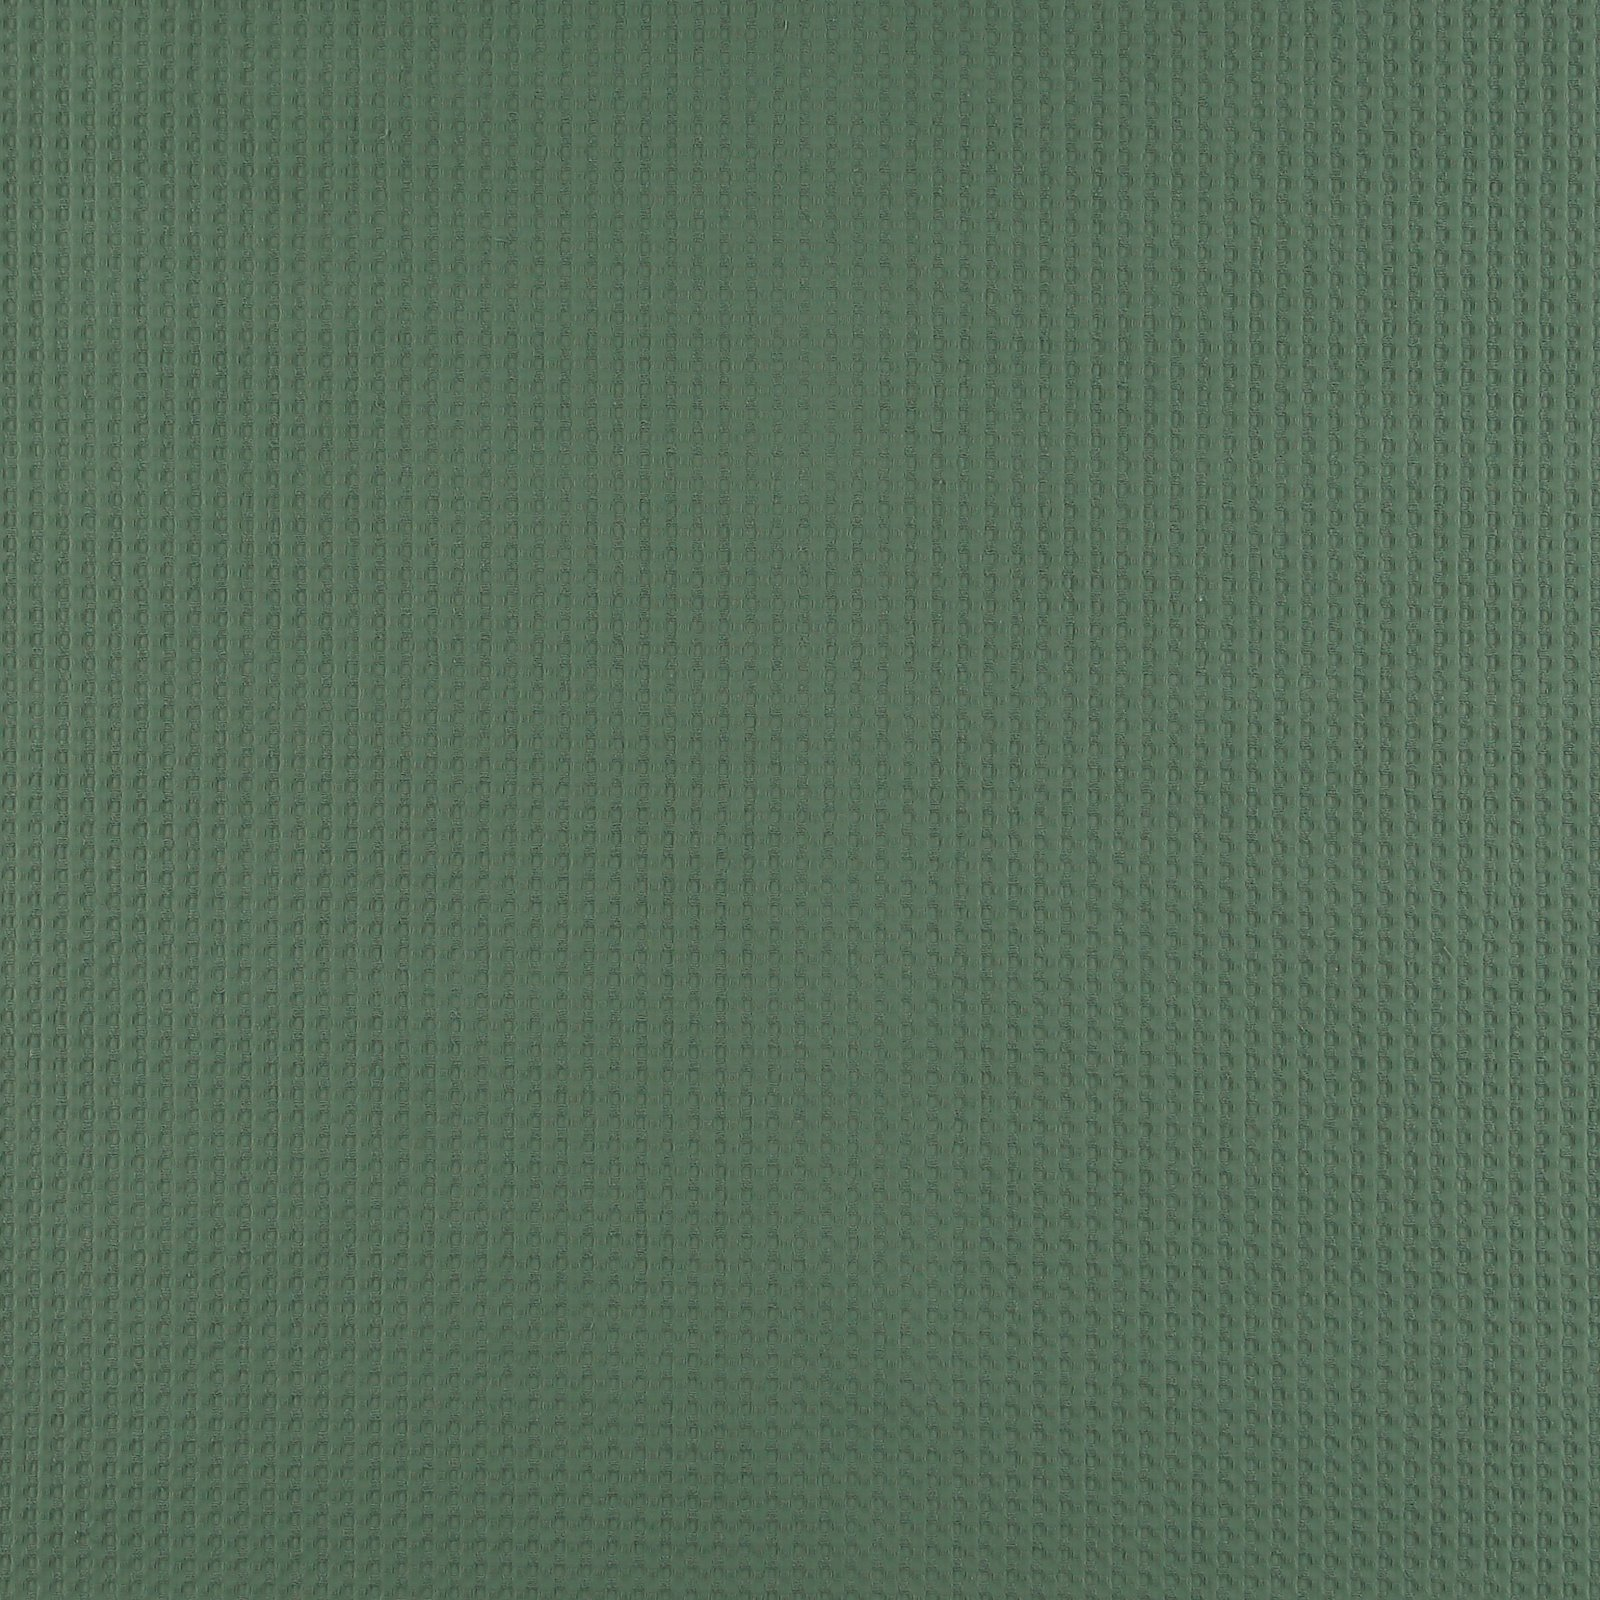 Woven jacquard bottle green w structure 501886_pack_sp